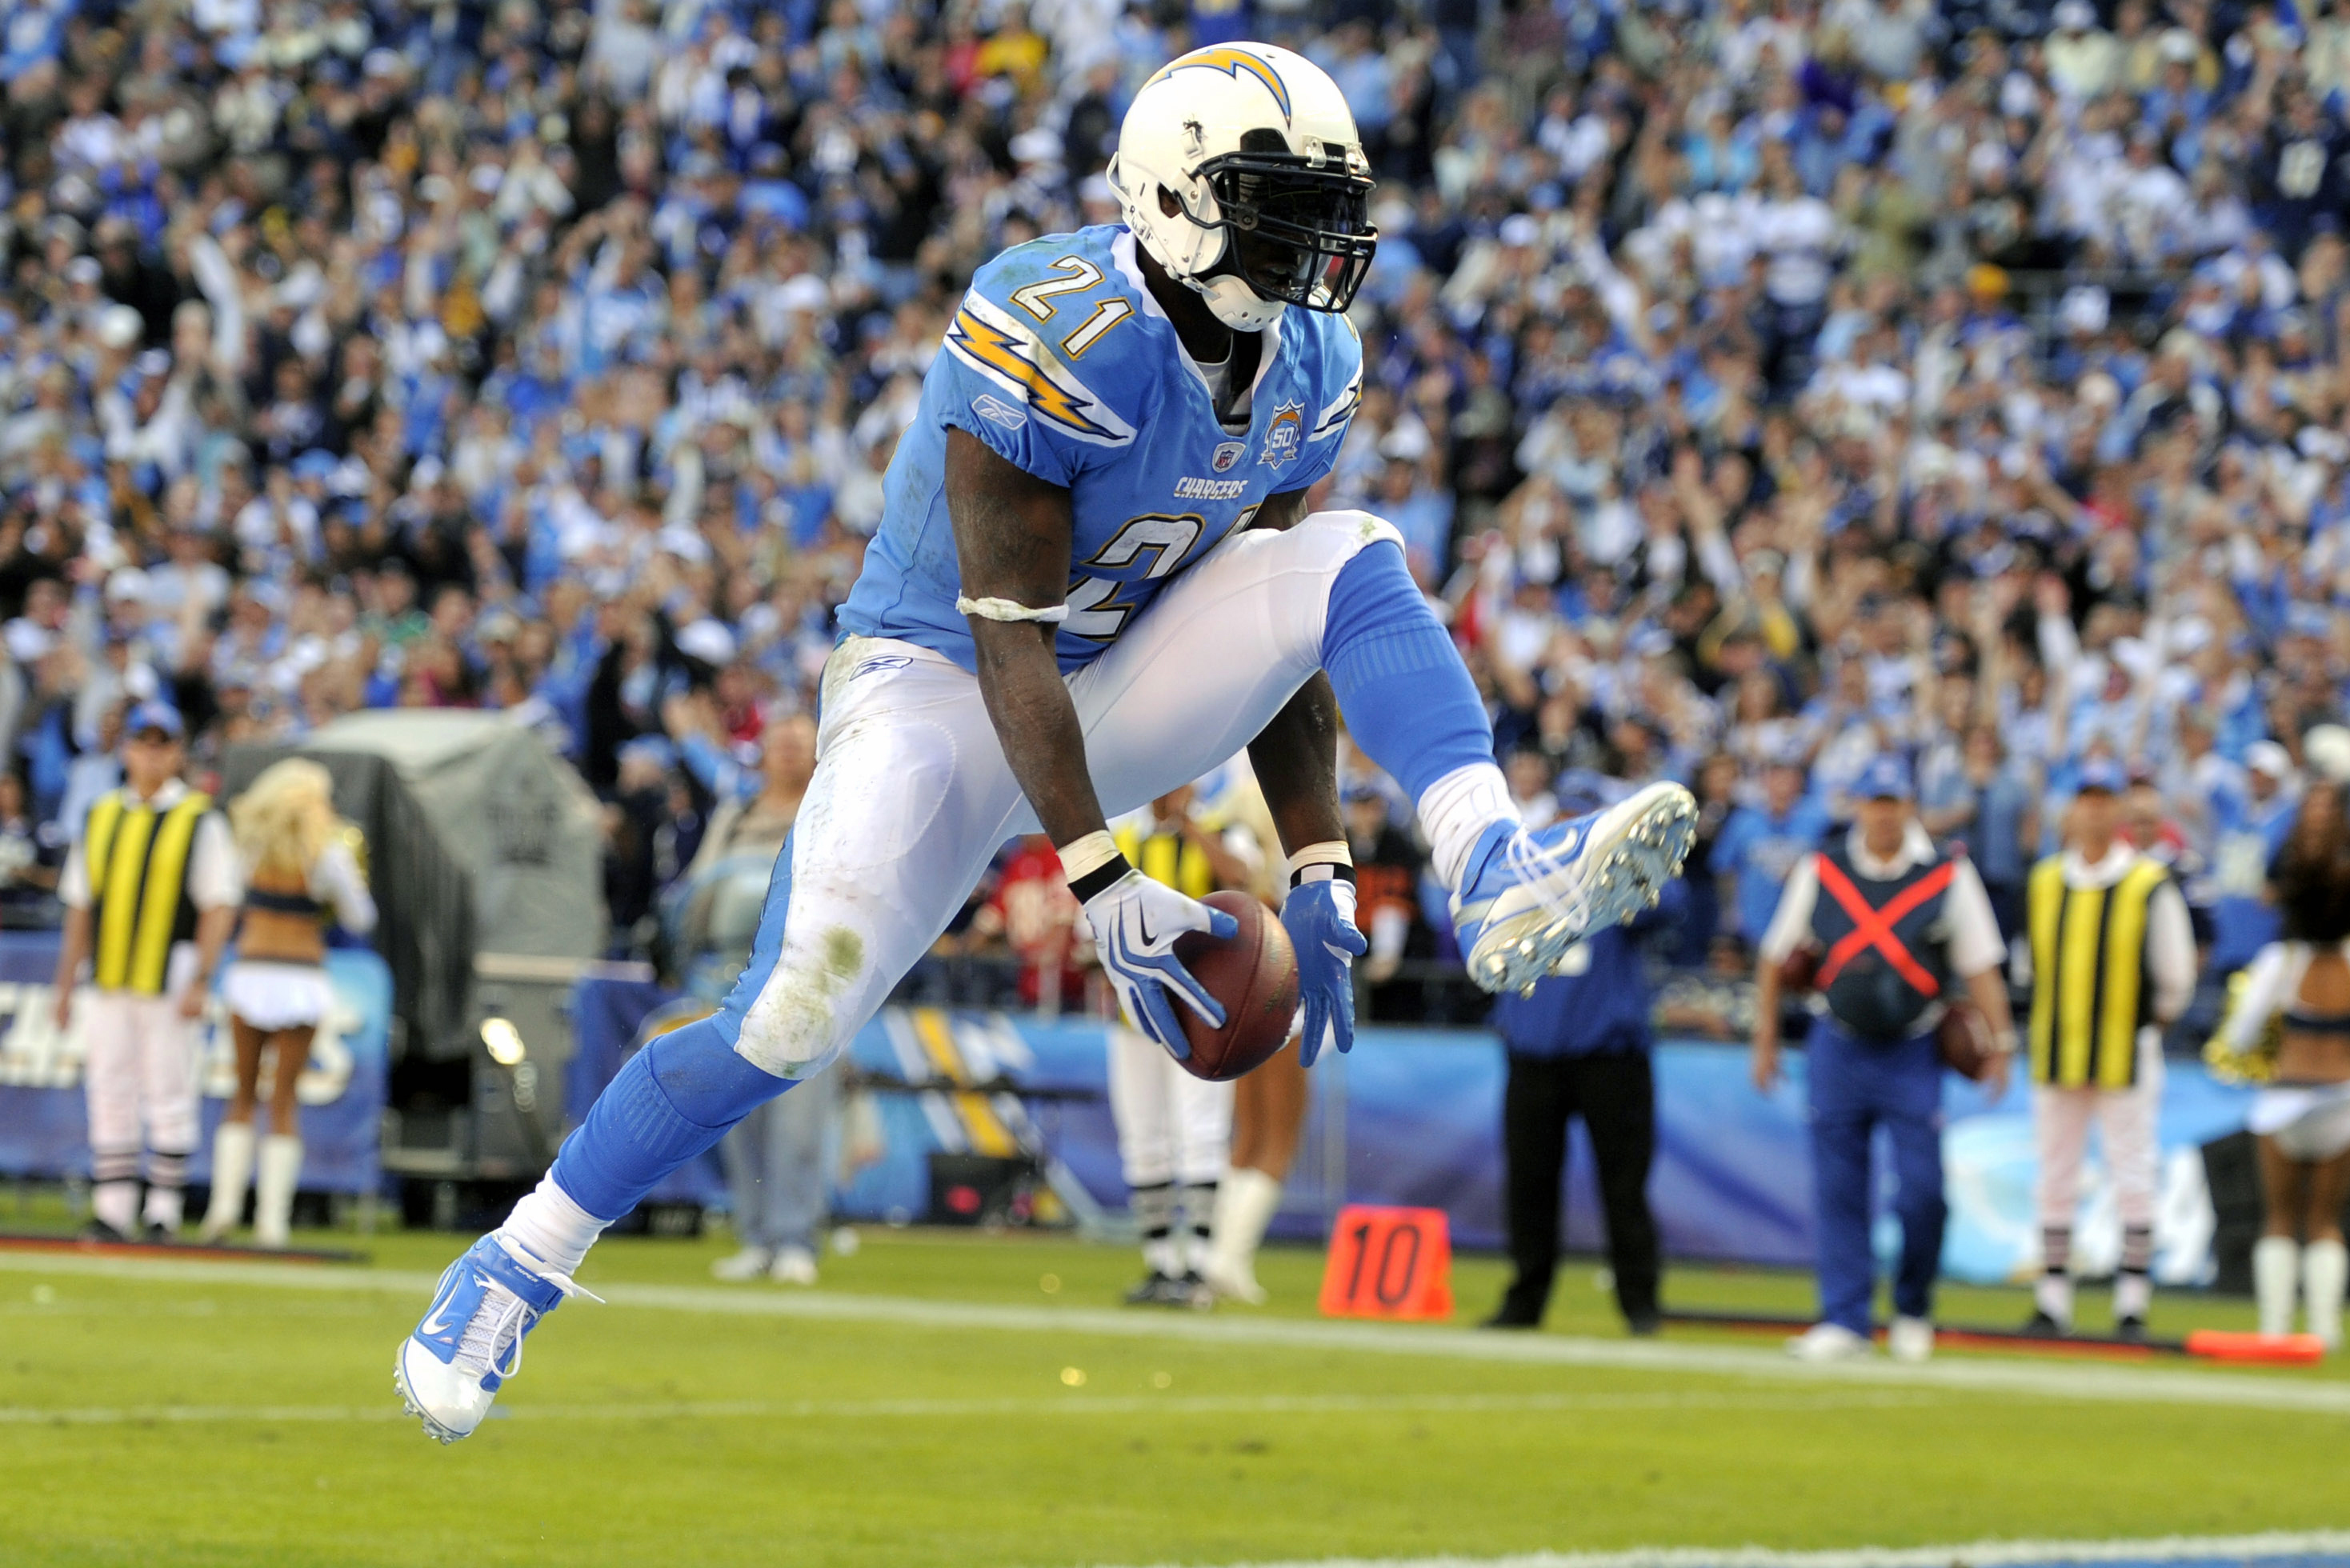 LaDainian Tomlinson Leads Chargers Past Raiders in B/R Madden GOAT ...